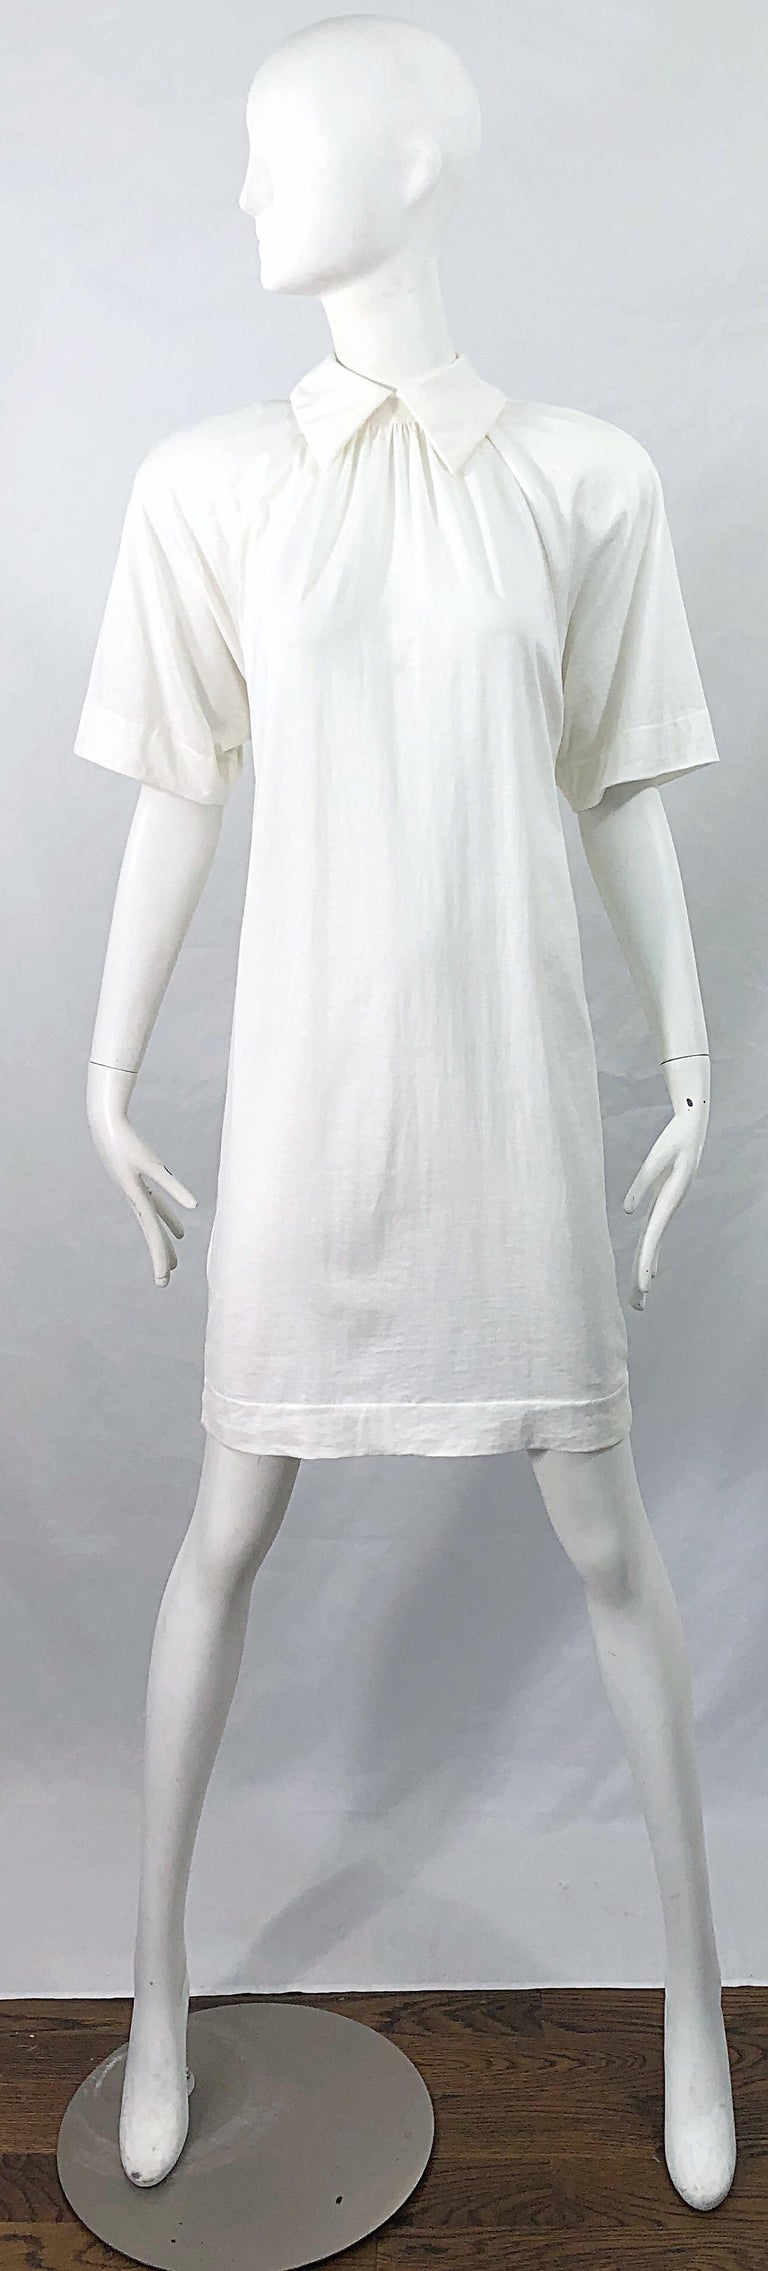 Avant Garde early 90s JAMES PURCELL Couture stark white cotton tee shirt dress ! Purcell left his lucrative marketing job on Wall Street  on May 11, 1989 to pursue his dream of becoming a designer. He was almost immediately successful, and was known